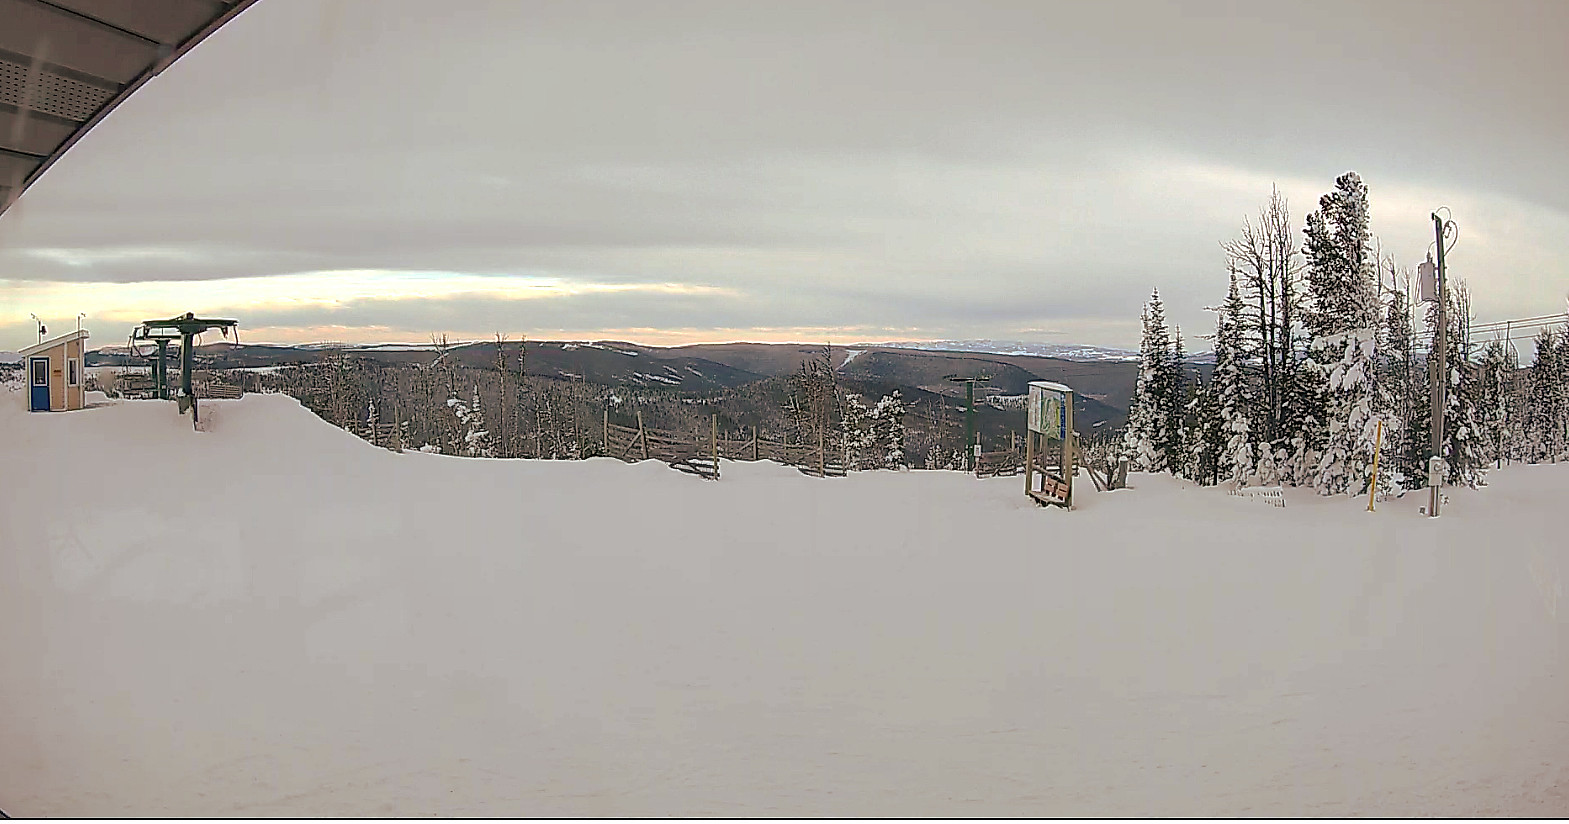 Webcam located at the summit of Porphyry Peak at Showdown Montana from the Top Rock building.